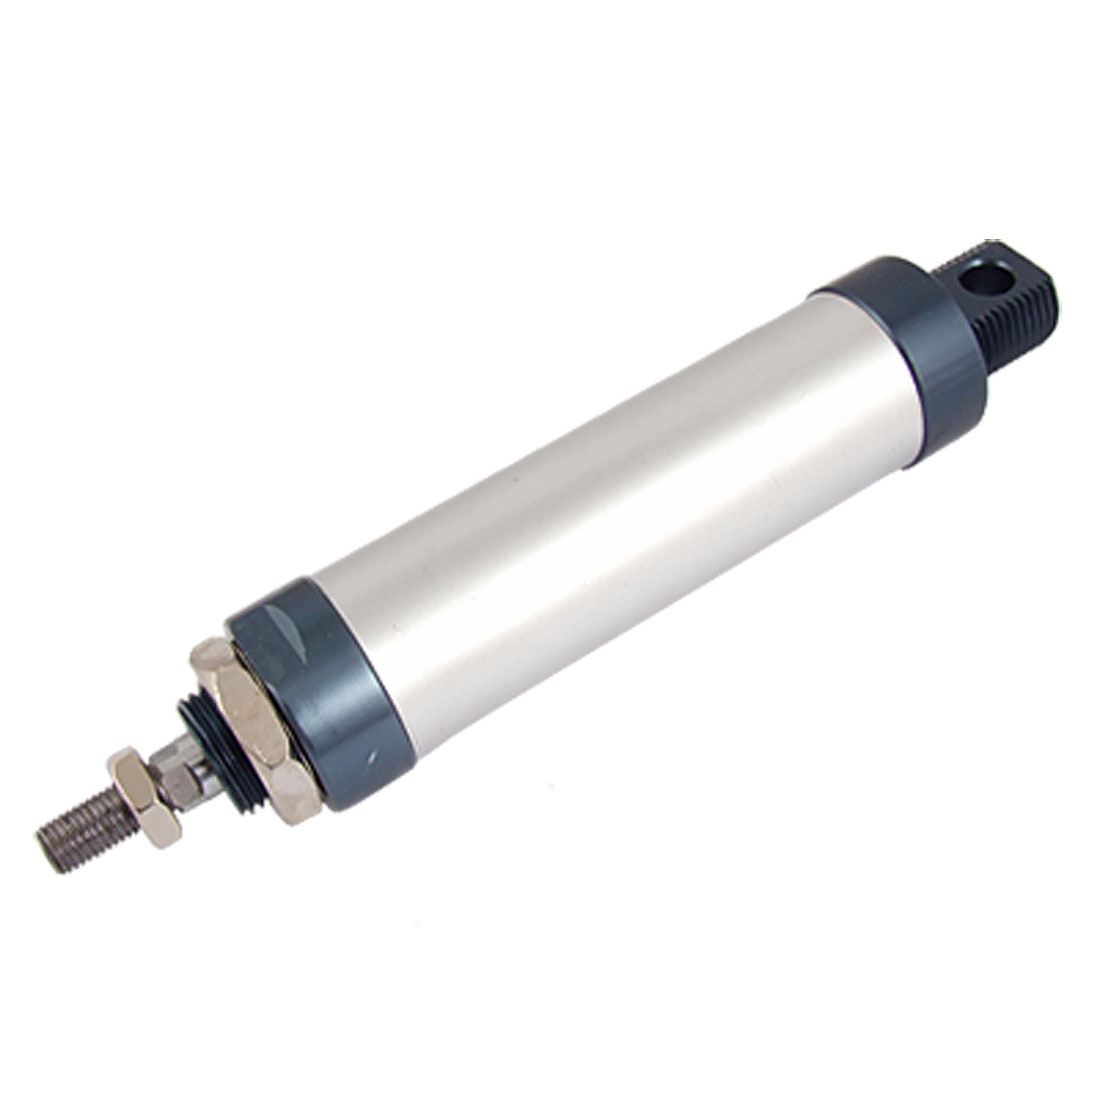 MAL Series 100mm Stroke 32mm Bore Aluminum Alloy Mini Air Cylinder